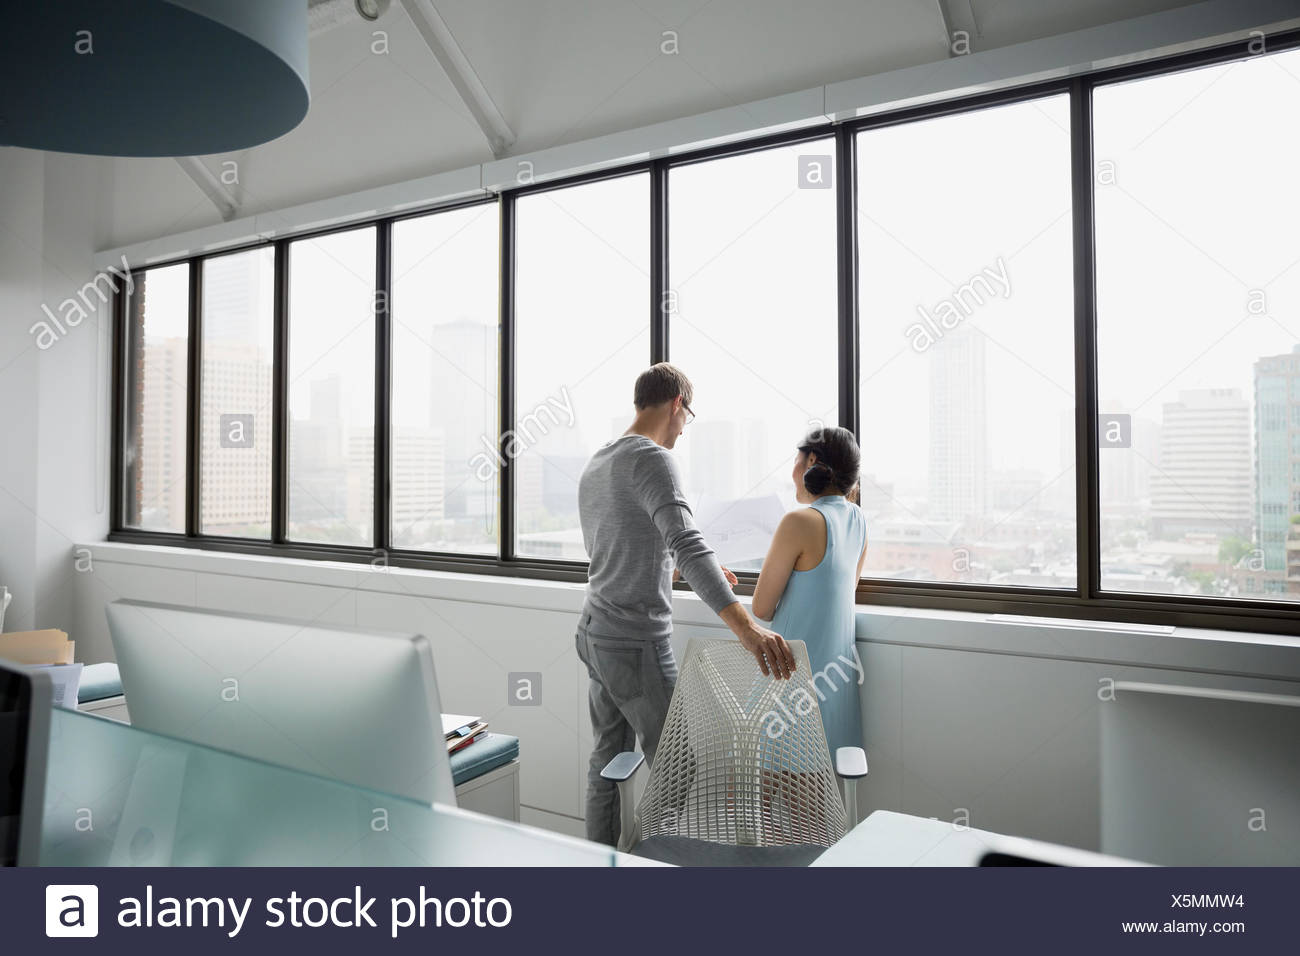 Architects looking out office window - Stock Image